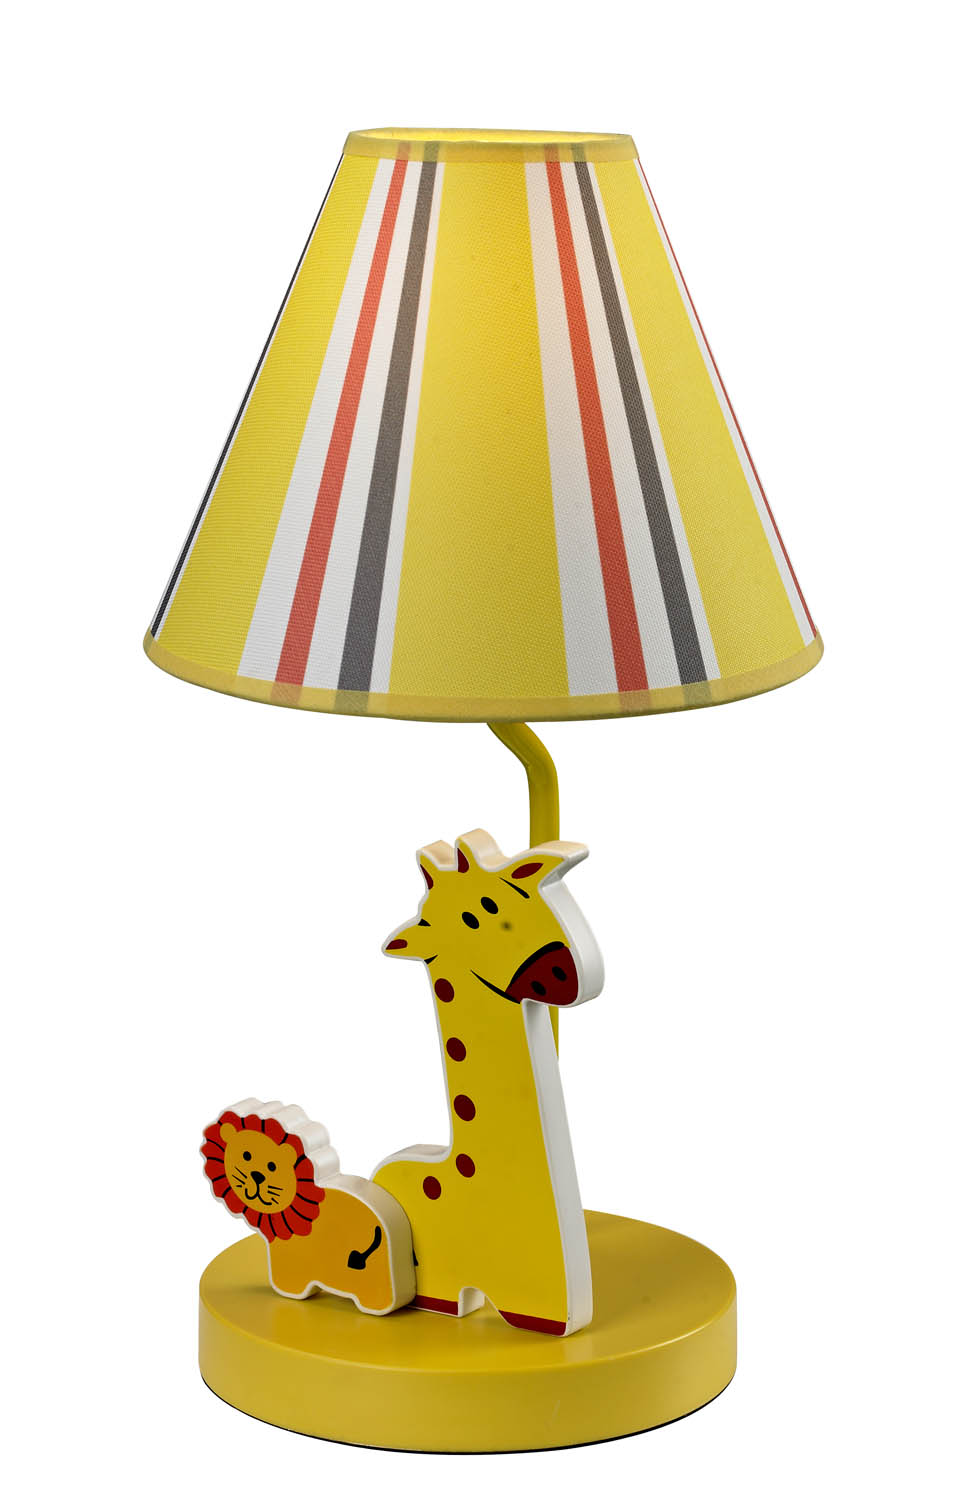 Ihausexpress colorful kids room table lamp mt0455 1a for Lamp kids room